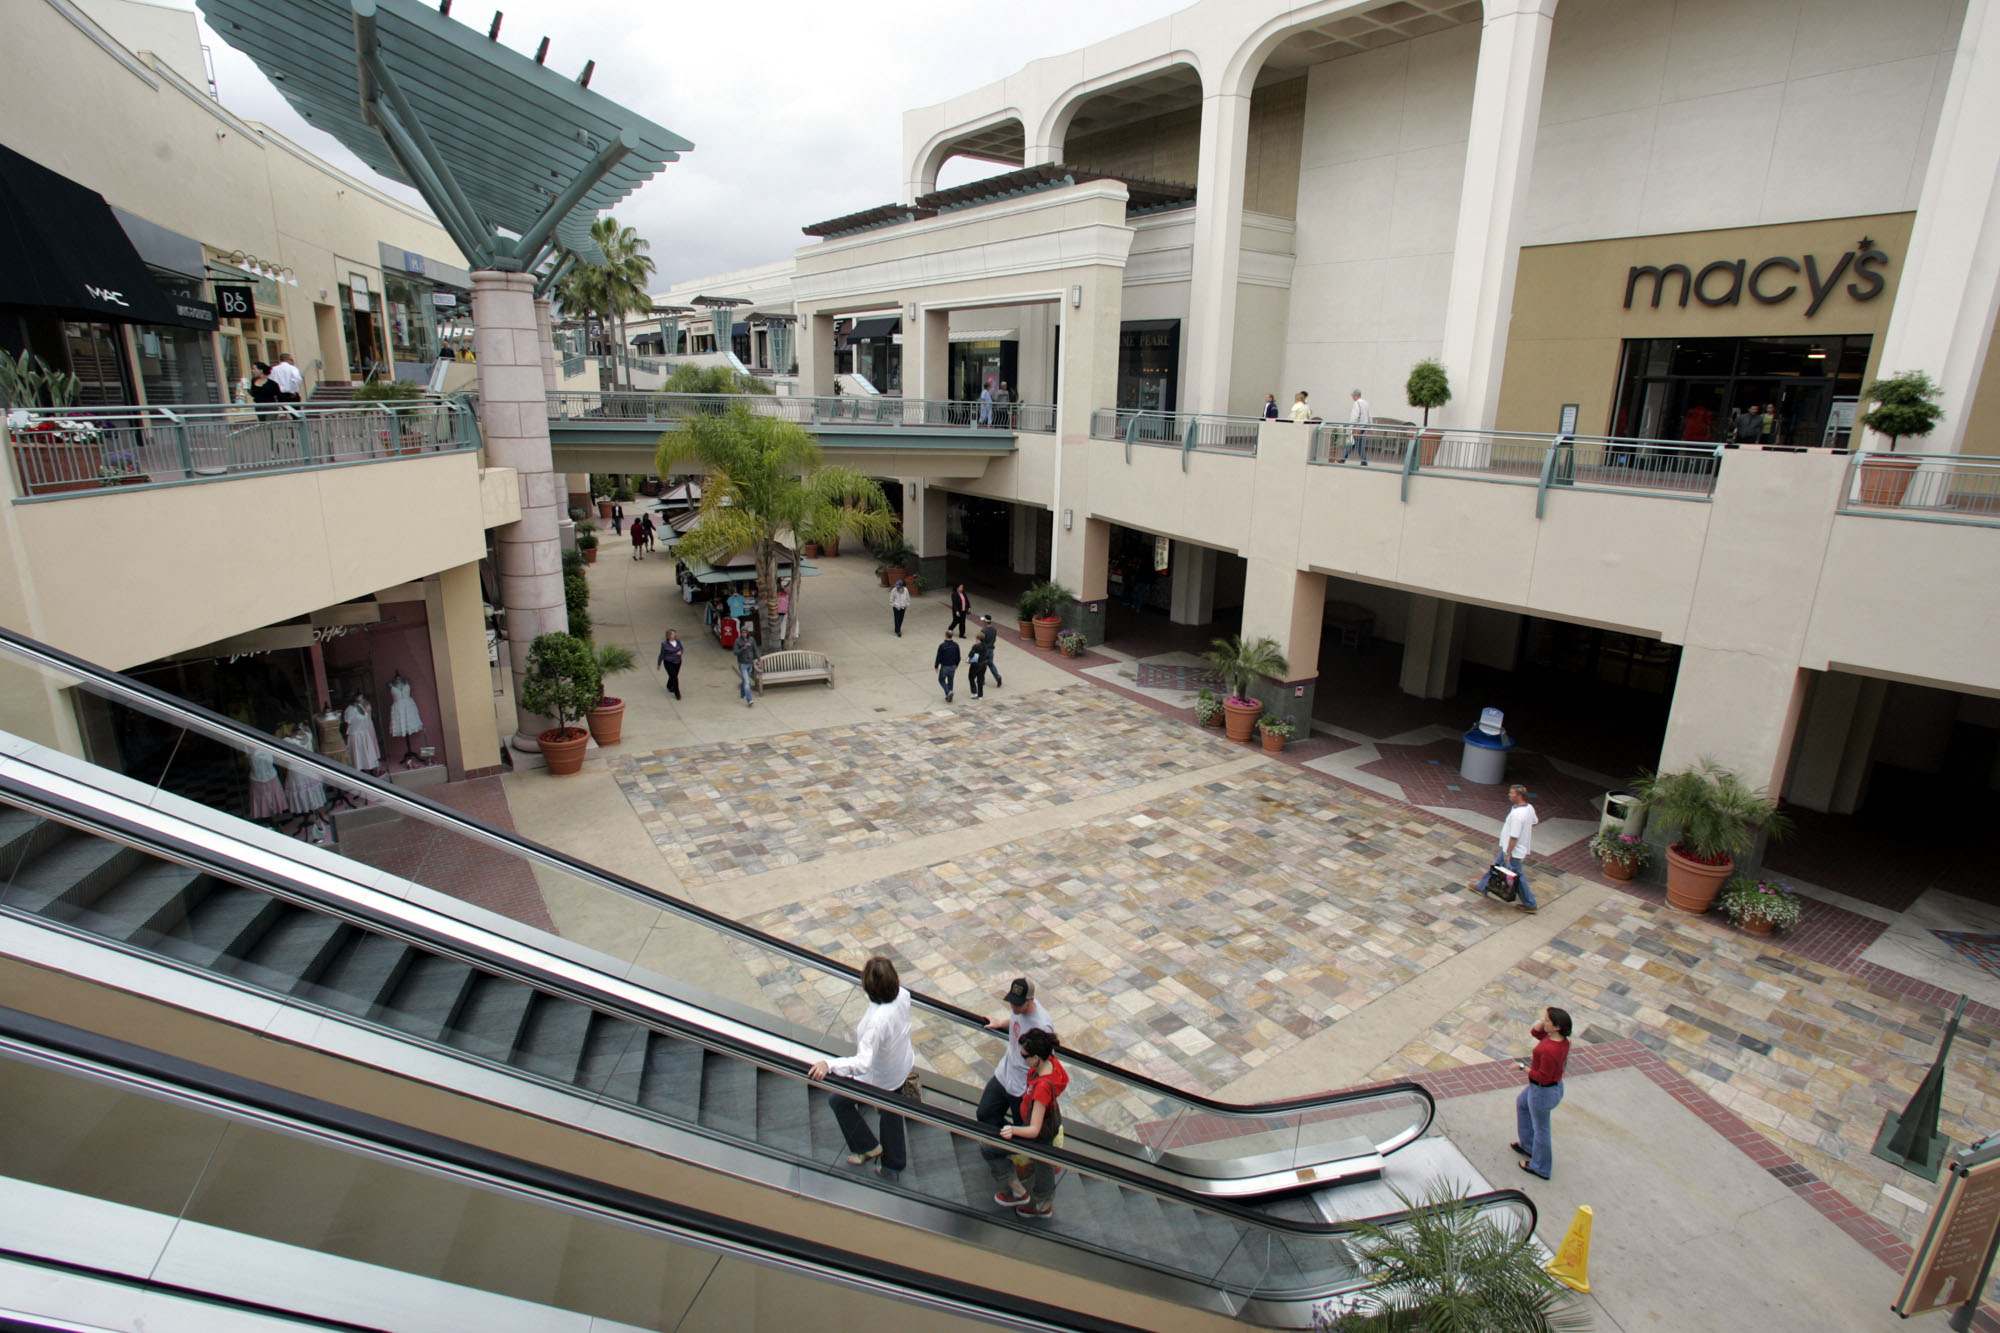 FILE - In this May 5, 2005 file photo, shoppers circulate through the Fashion Valley Mall, a Simon Property Group mall, in San Diego. The nation's largest shopping mall owner, Simon Property Group, on Tuesday, Feb. 16, 2010 made a $10 billion hostile bid to acquire its ailing rival, General Growth Properties. (AP Photo/Lenny Ignelzi, File)